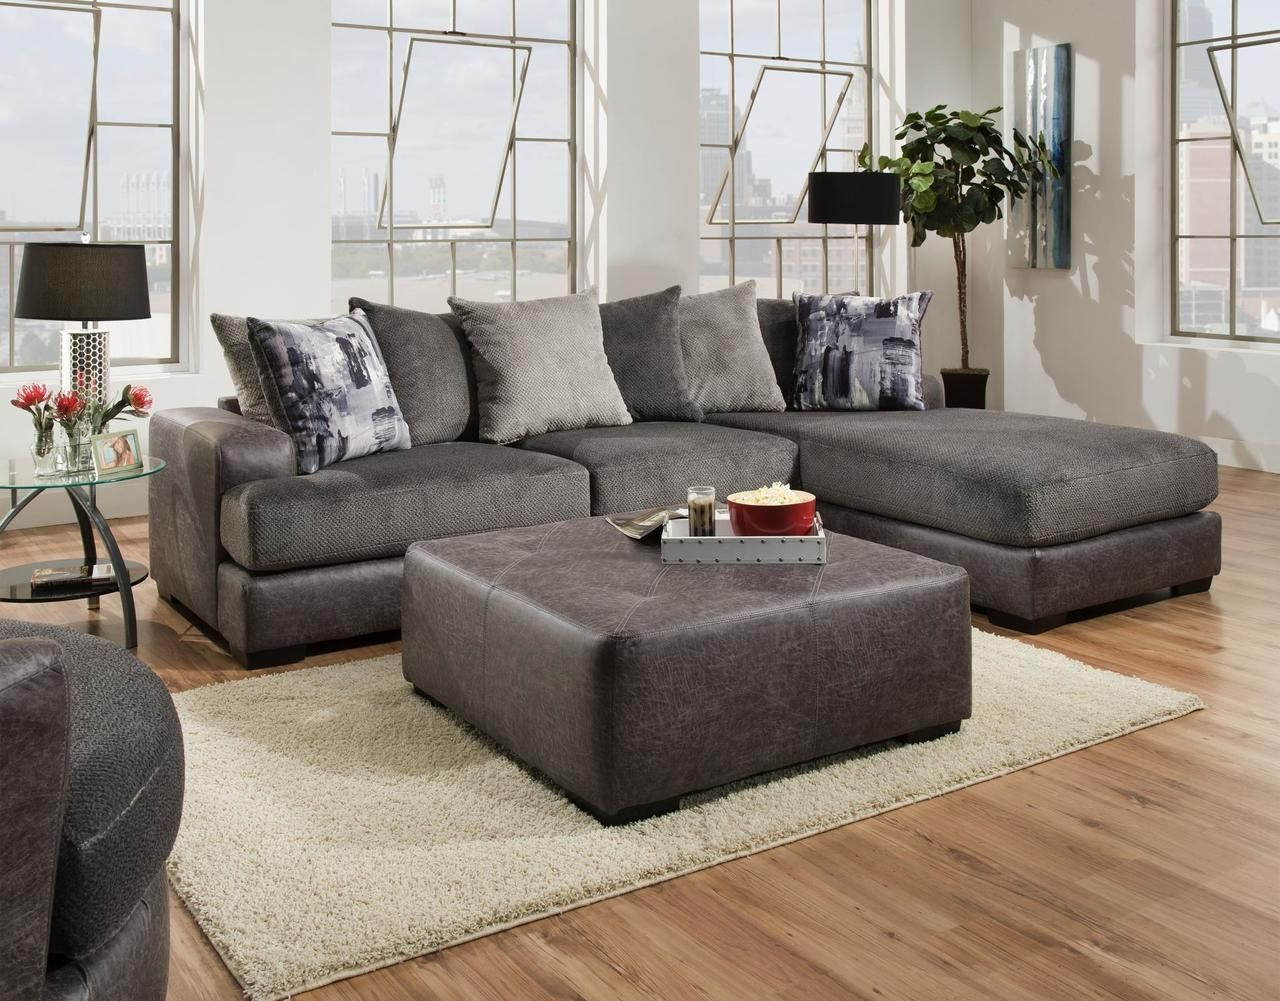 Albany Wesley Dove 682 Sectional Sofa Savvy Discount Furniture